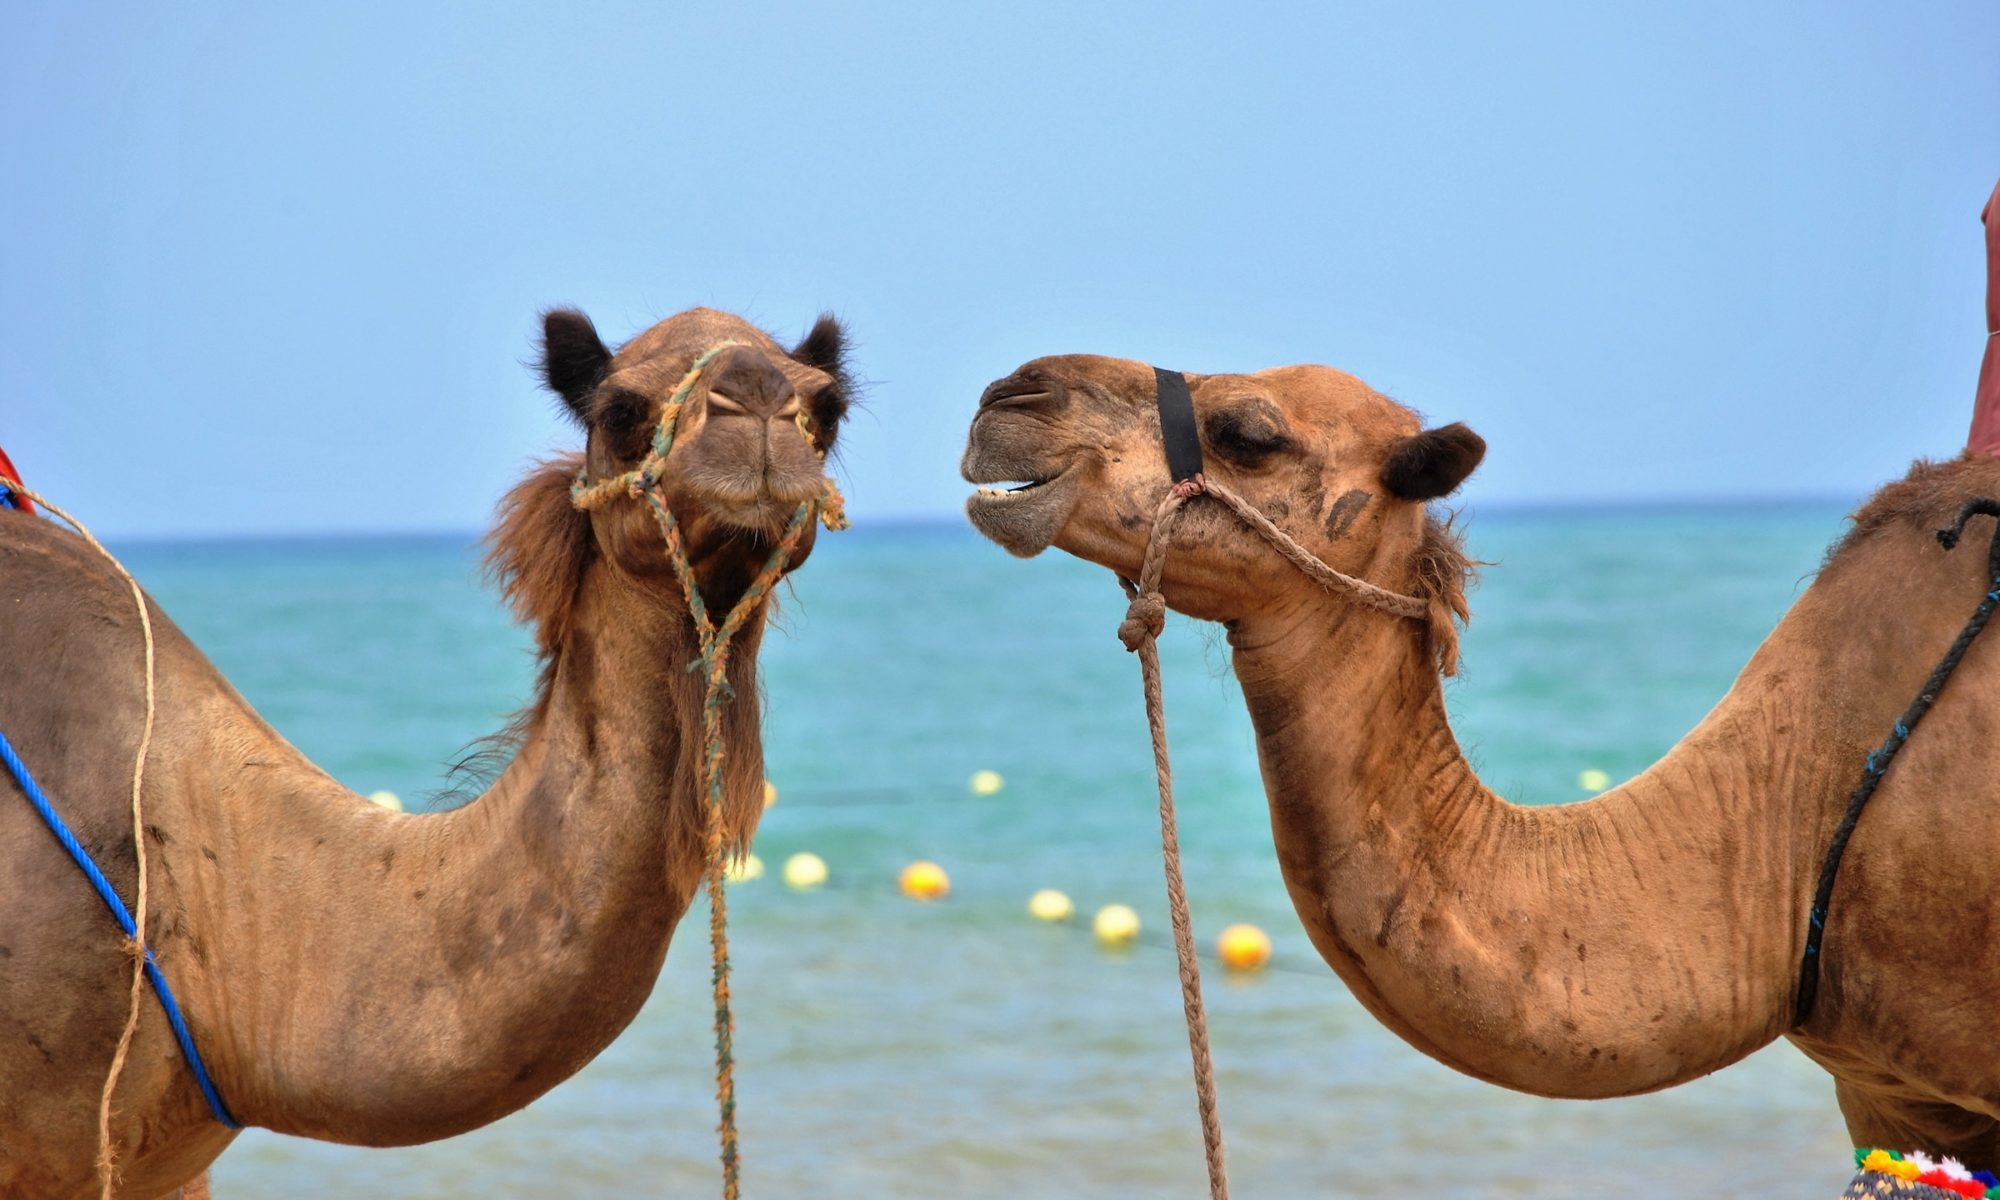 One camel staring at another camel, who is in existential distress